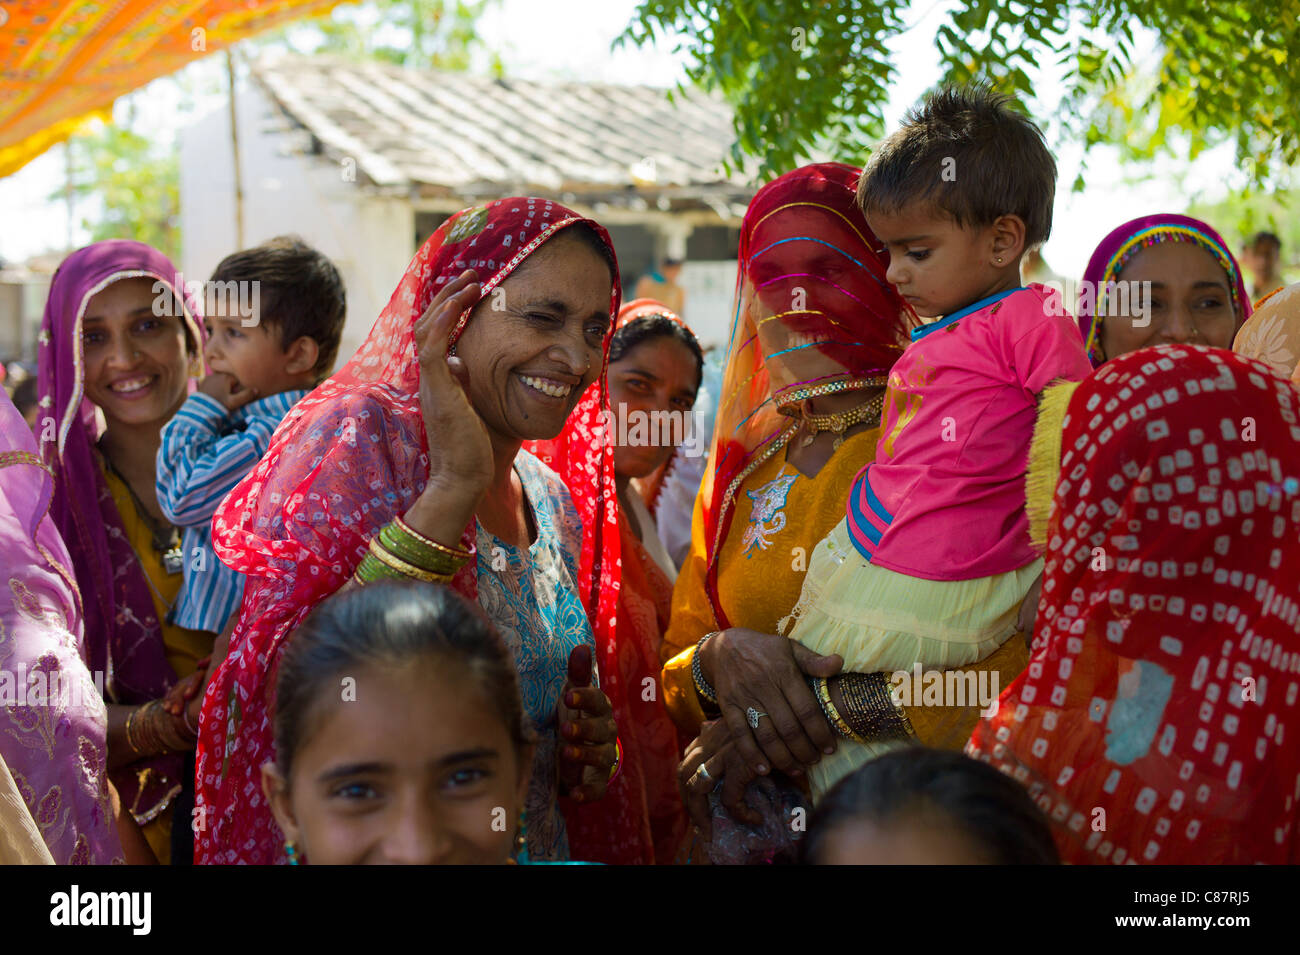 Indian wedding with guests dressed in their finest embellished saris in village of Rohet in Rajasthan, Northern - Stock Image